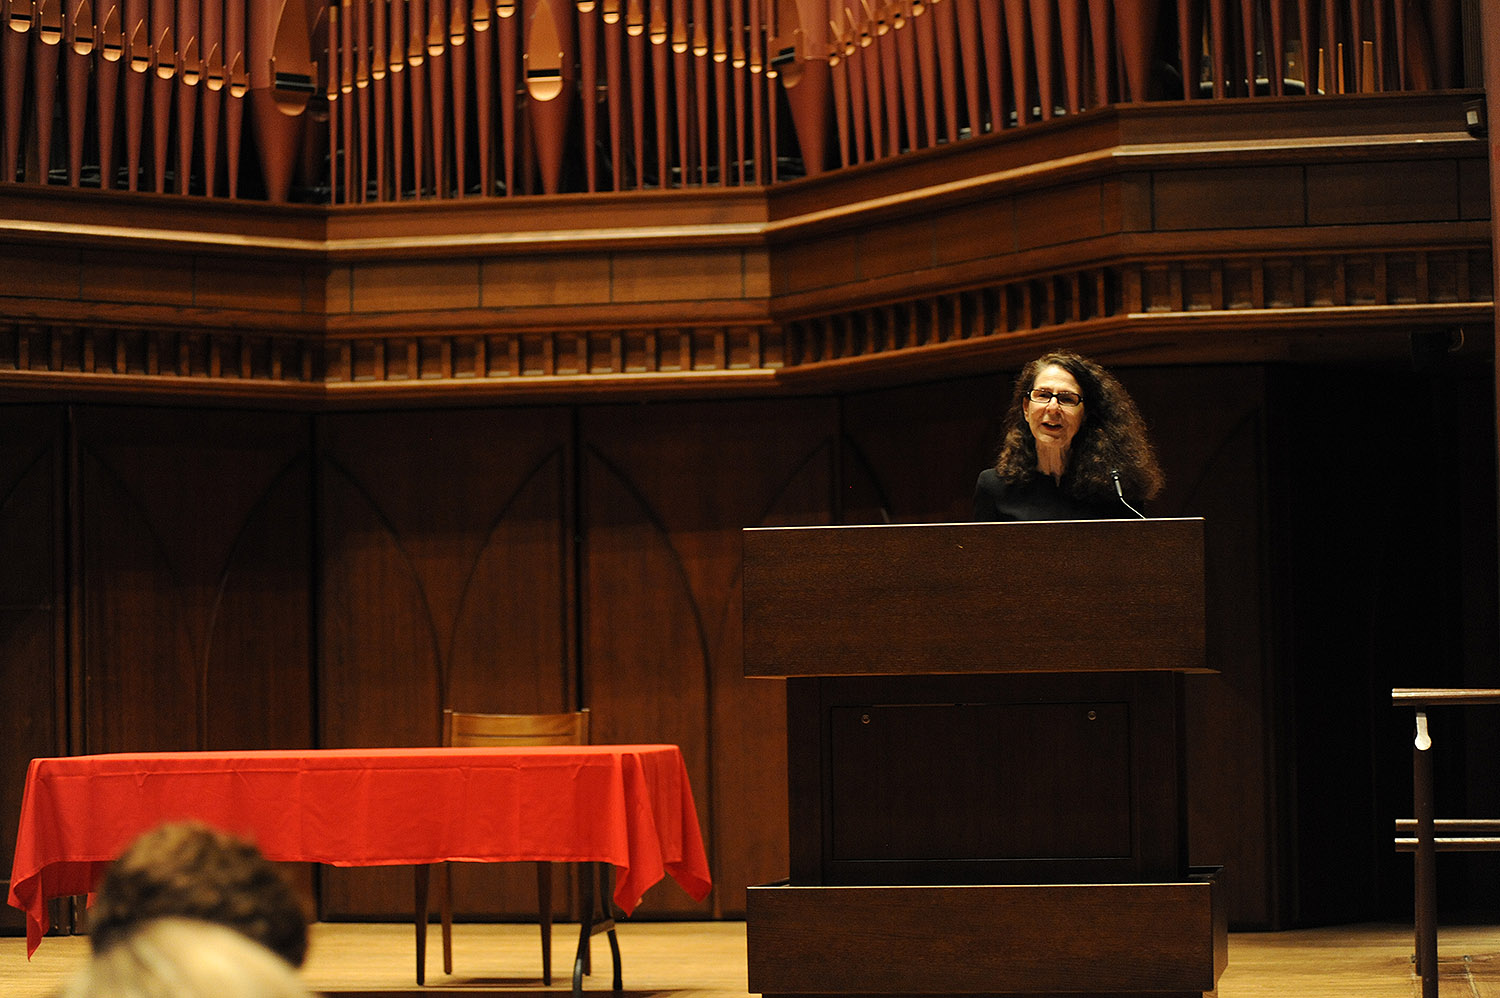 Anne Greene, University Professor of English and director of the Wesleyan Writers Conference and Writing Certificate program, introduced Aciman to the audience.